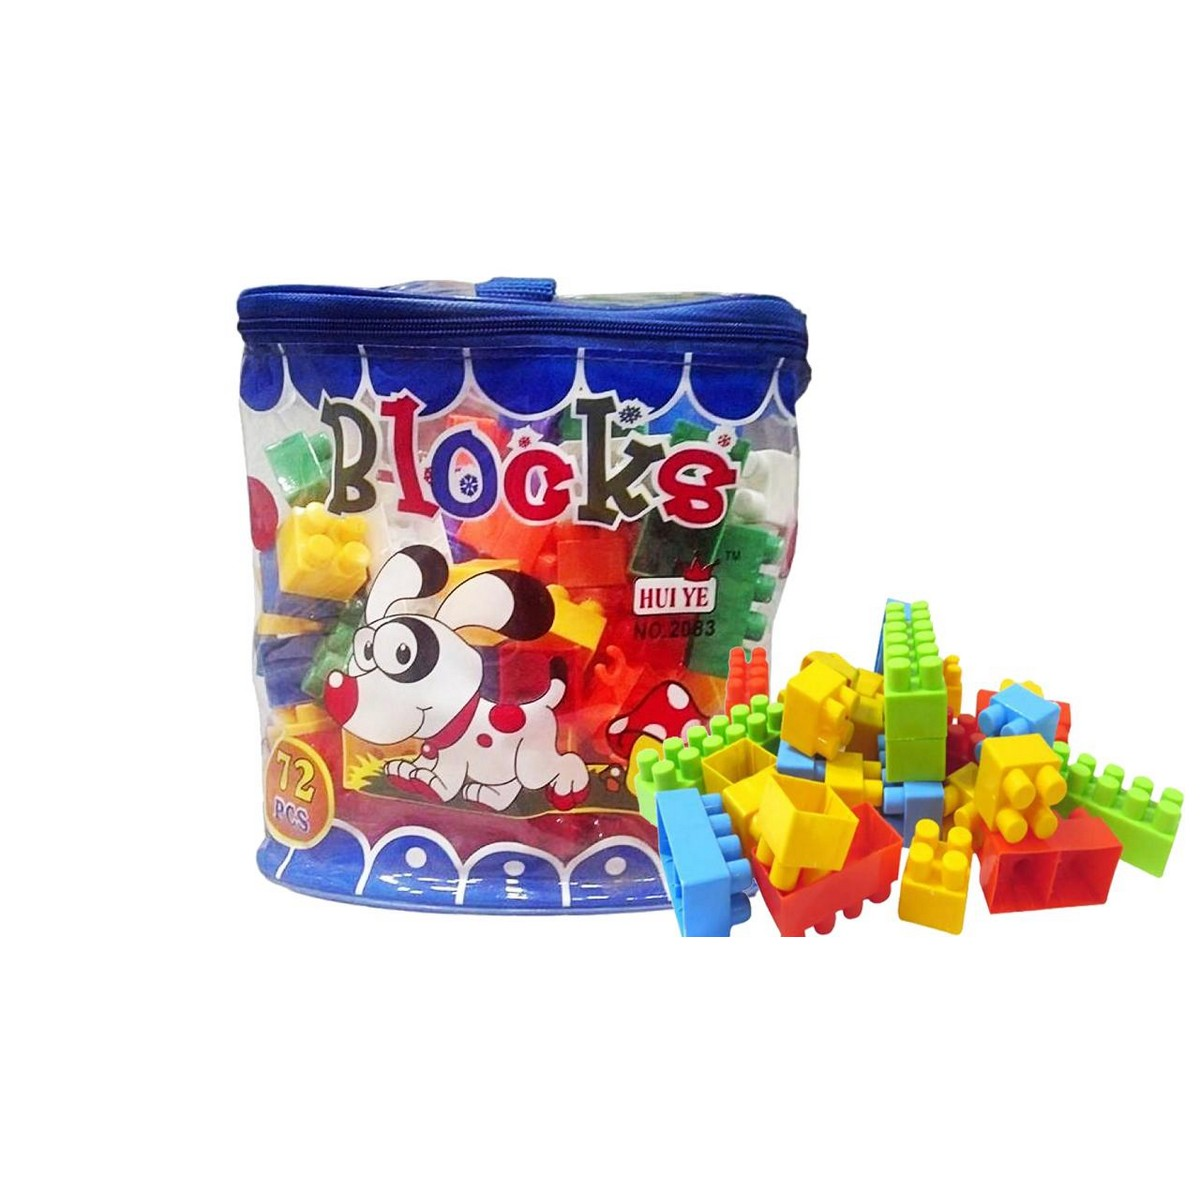 Building Blocks Set 72 Pcs Big Size High Quality Imported  For Kids Early Learning & Creative Model Playing